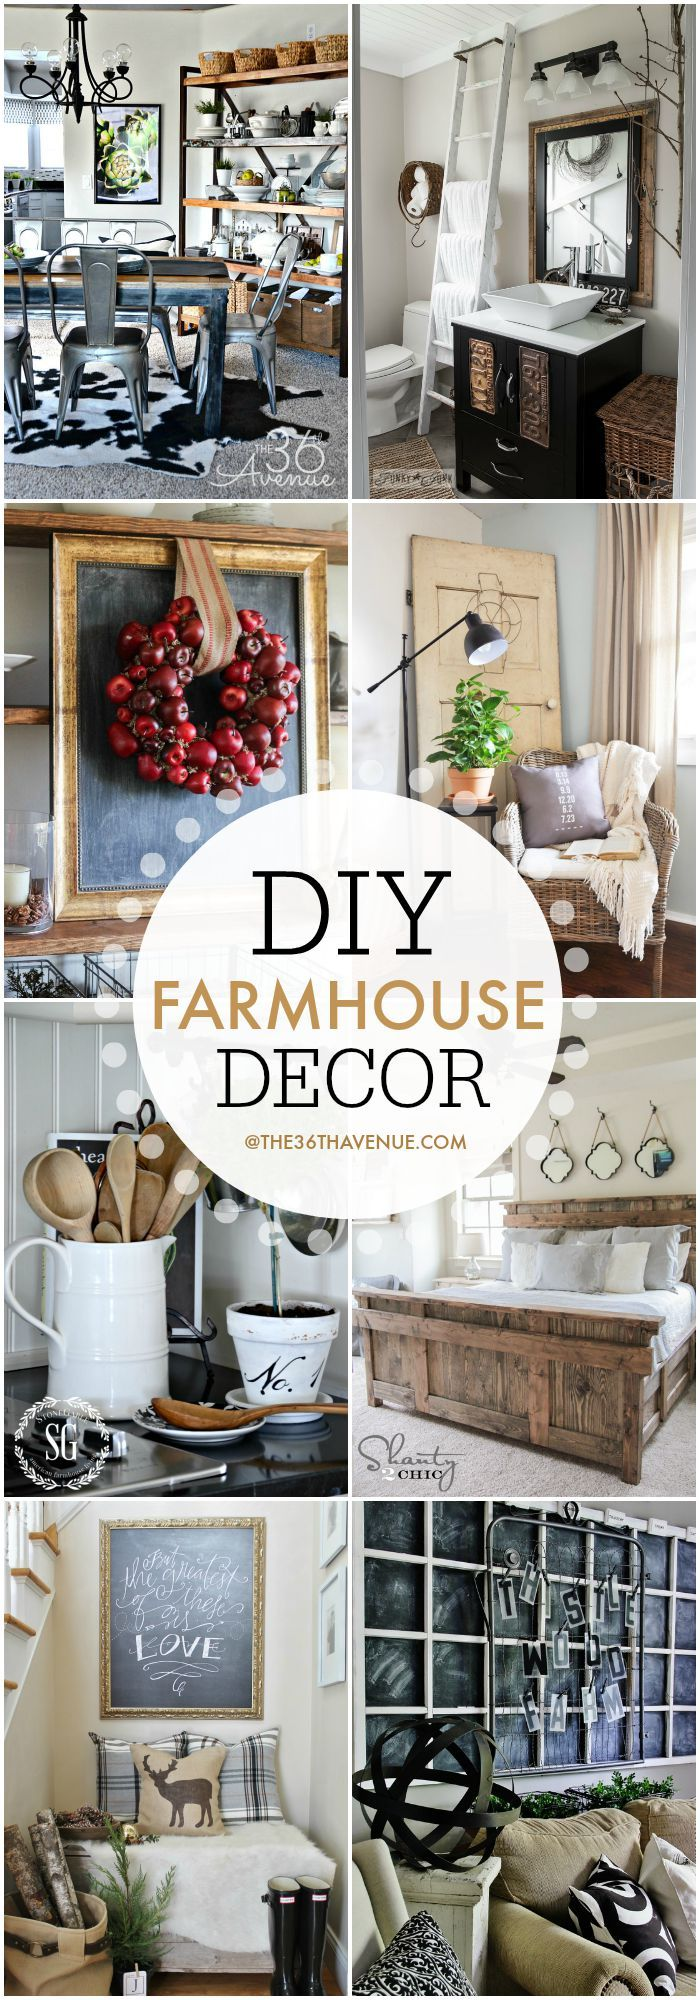 How To Decorate Your Home 381 best vintage/rustic/country home decorating ideas images on